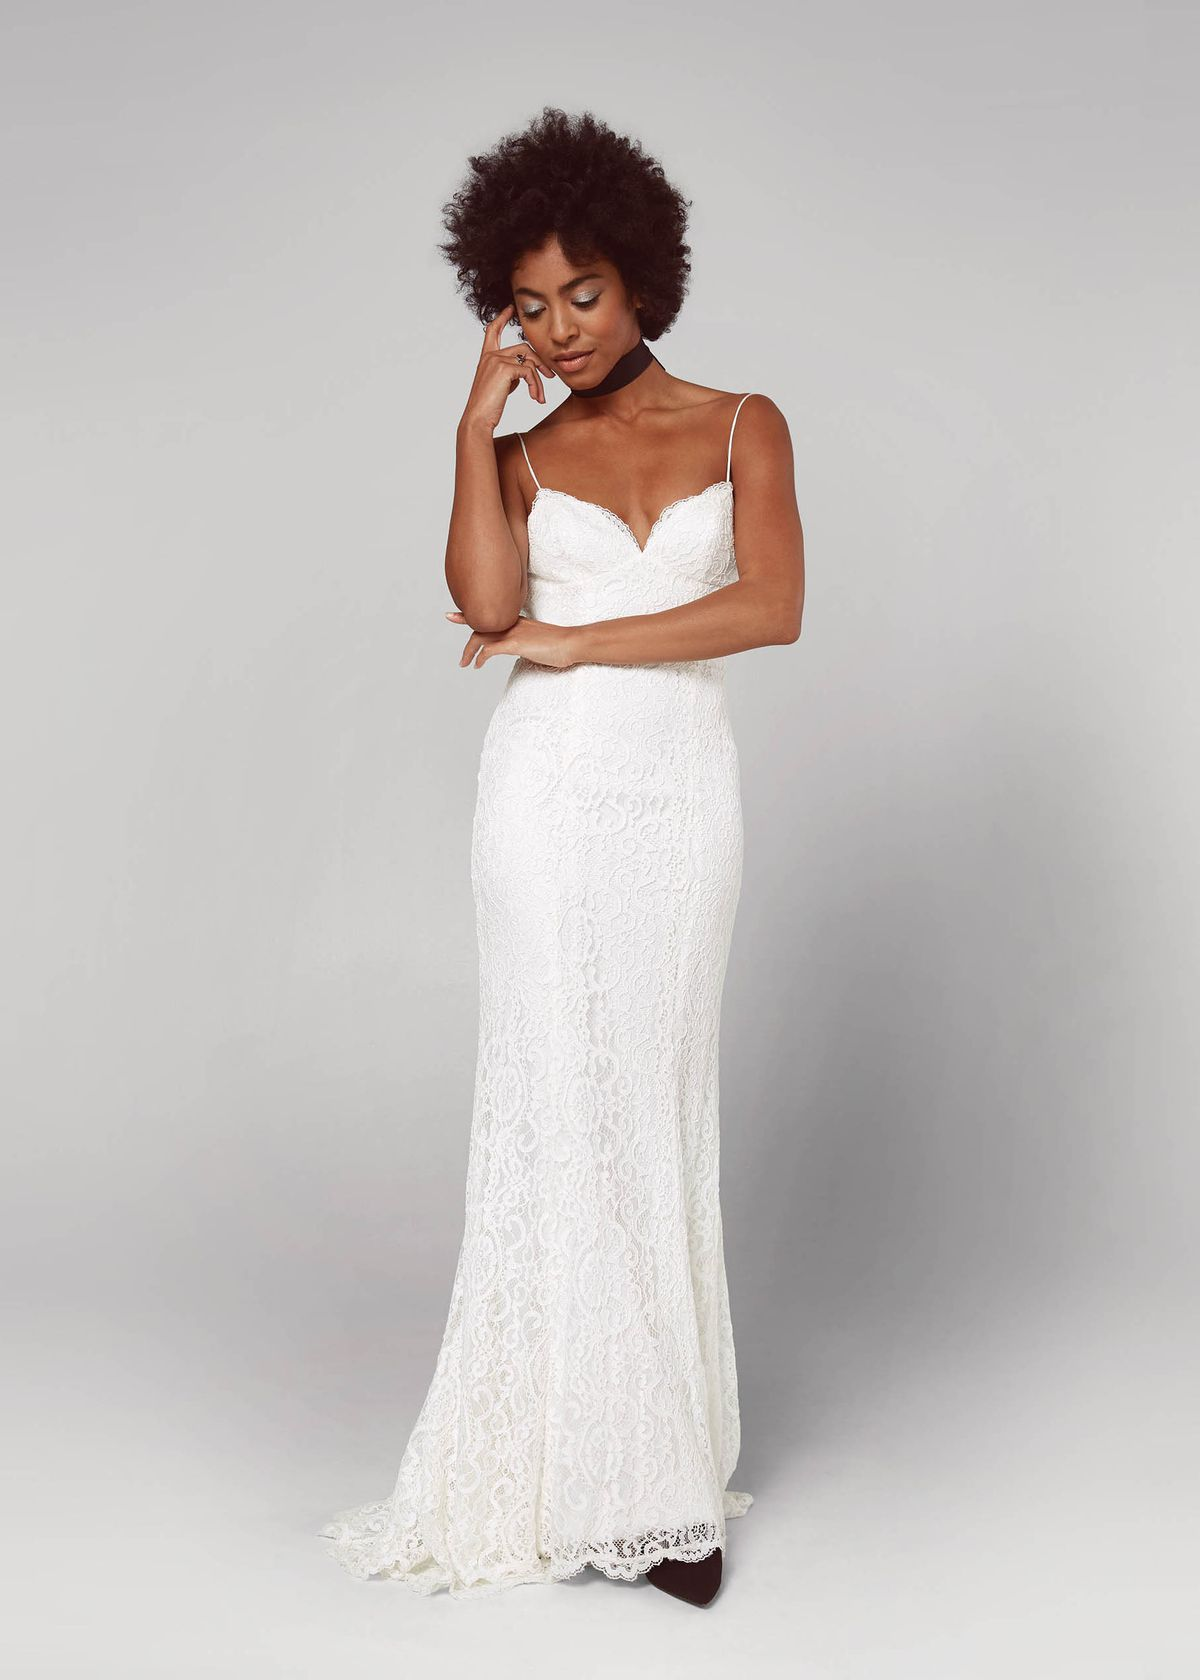 Where to buy affordable wedding dresses racked for White after wedding party dress